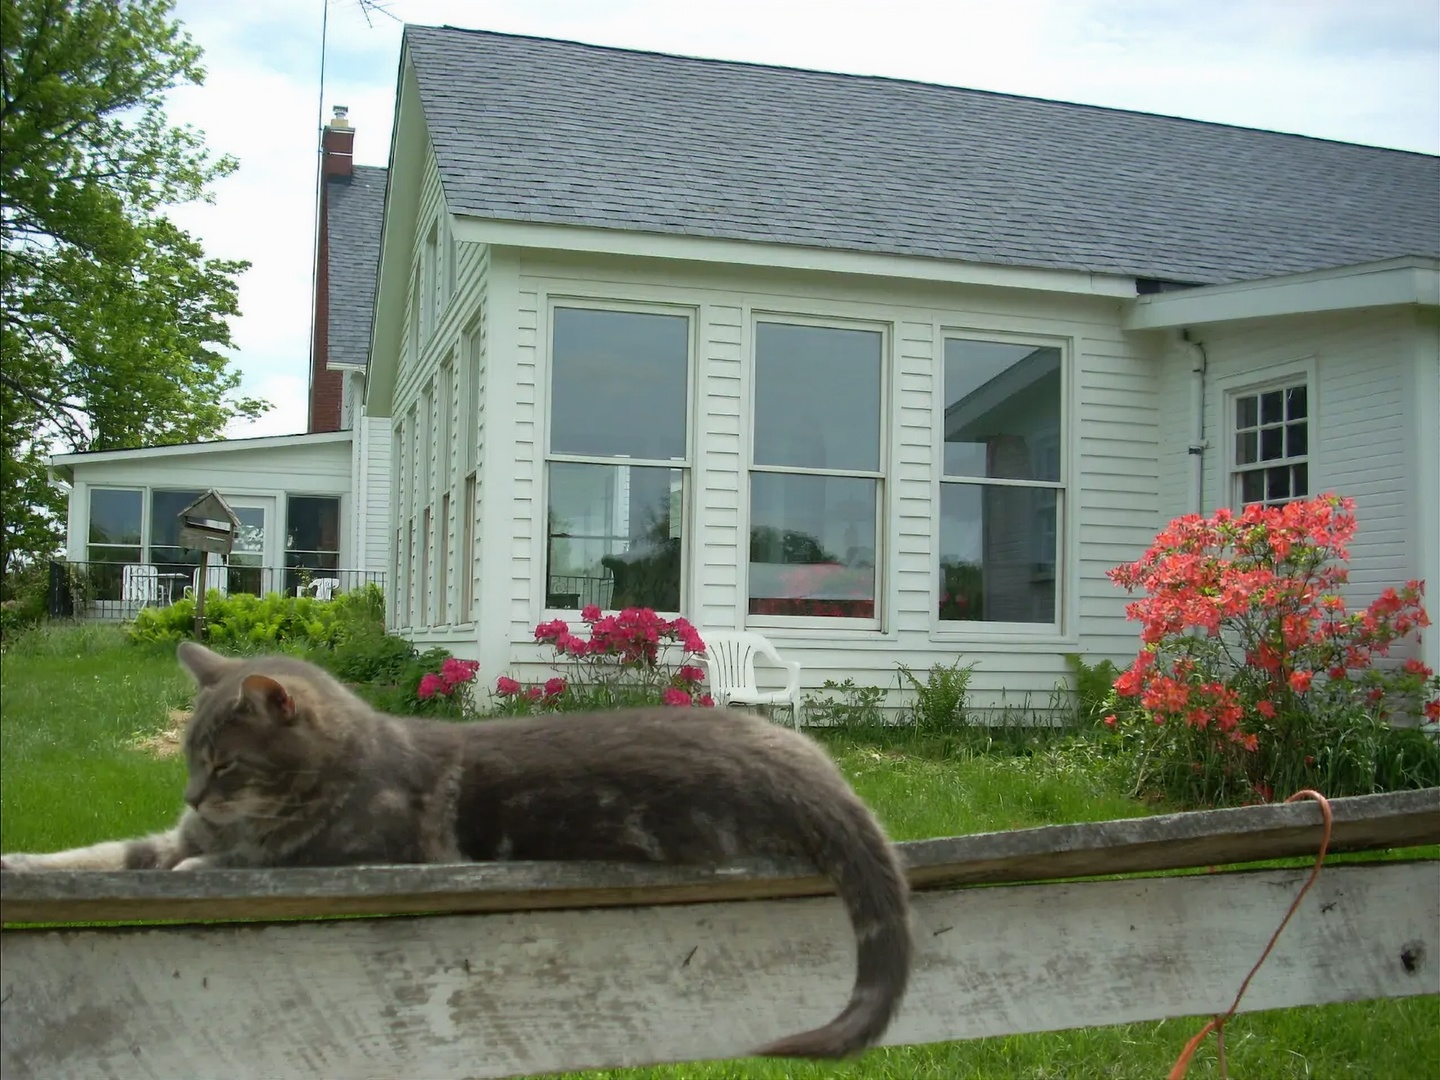 A cat sitting on a bench in front of a house at The Sanctuary at Wild Rose Acres.